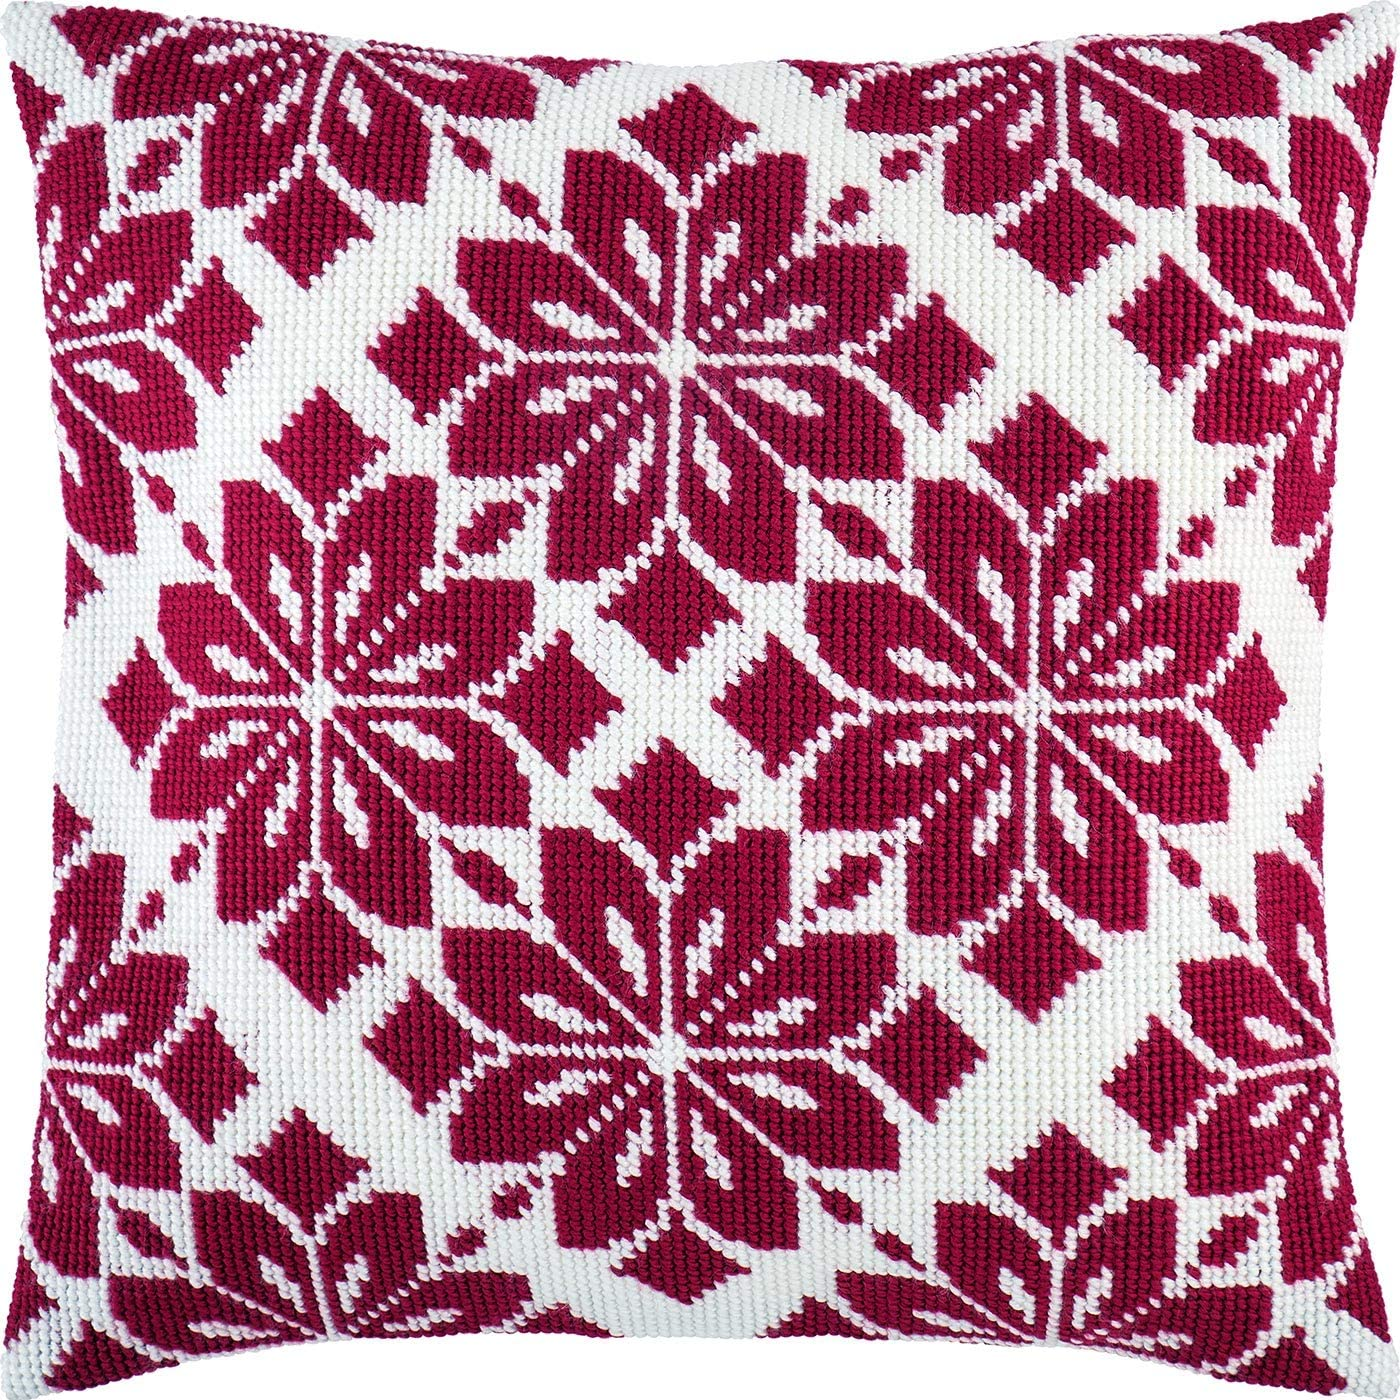 European Quality Printed Tapestry Canvas Nordic Star Needlepoint Kit Throw Pillow 16/×16 Inches